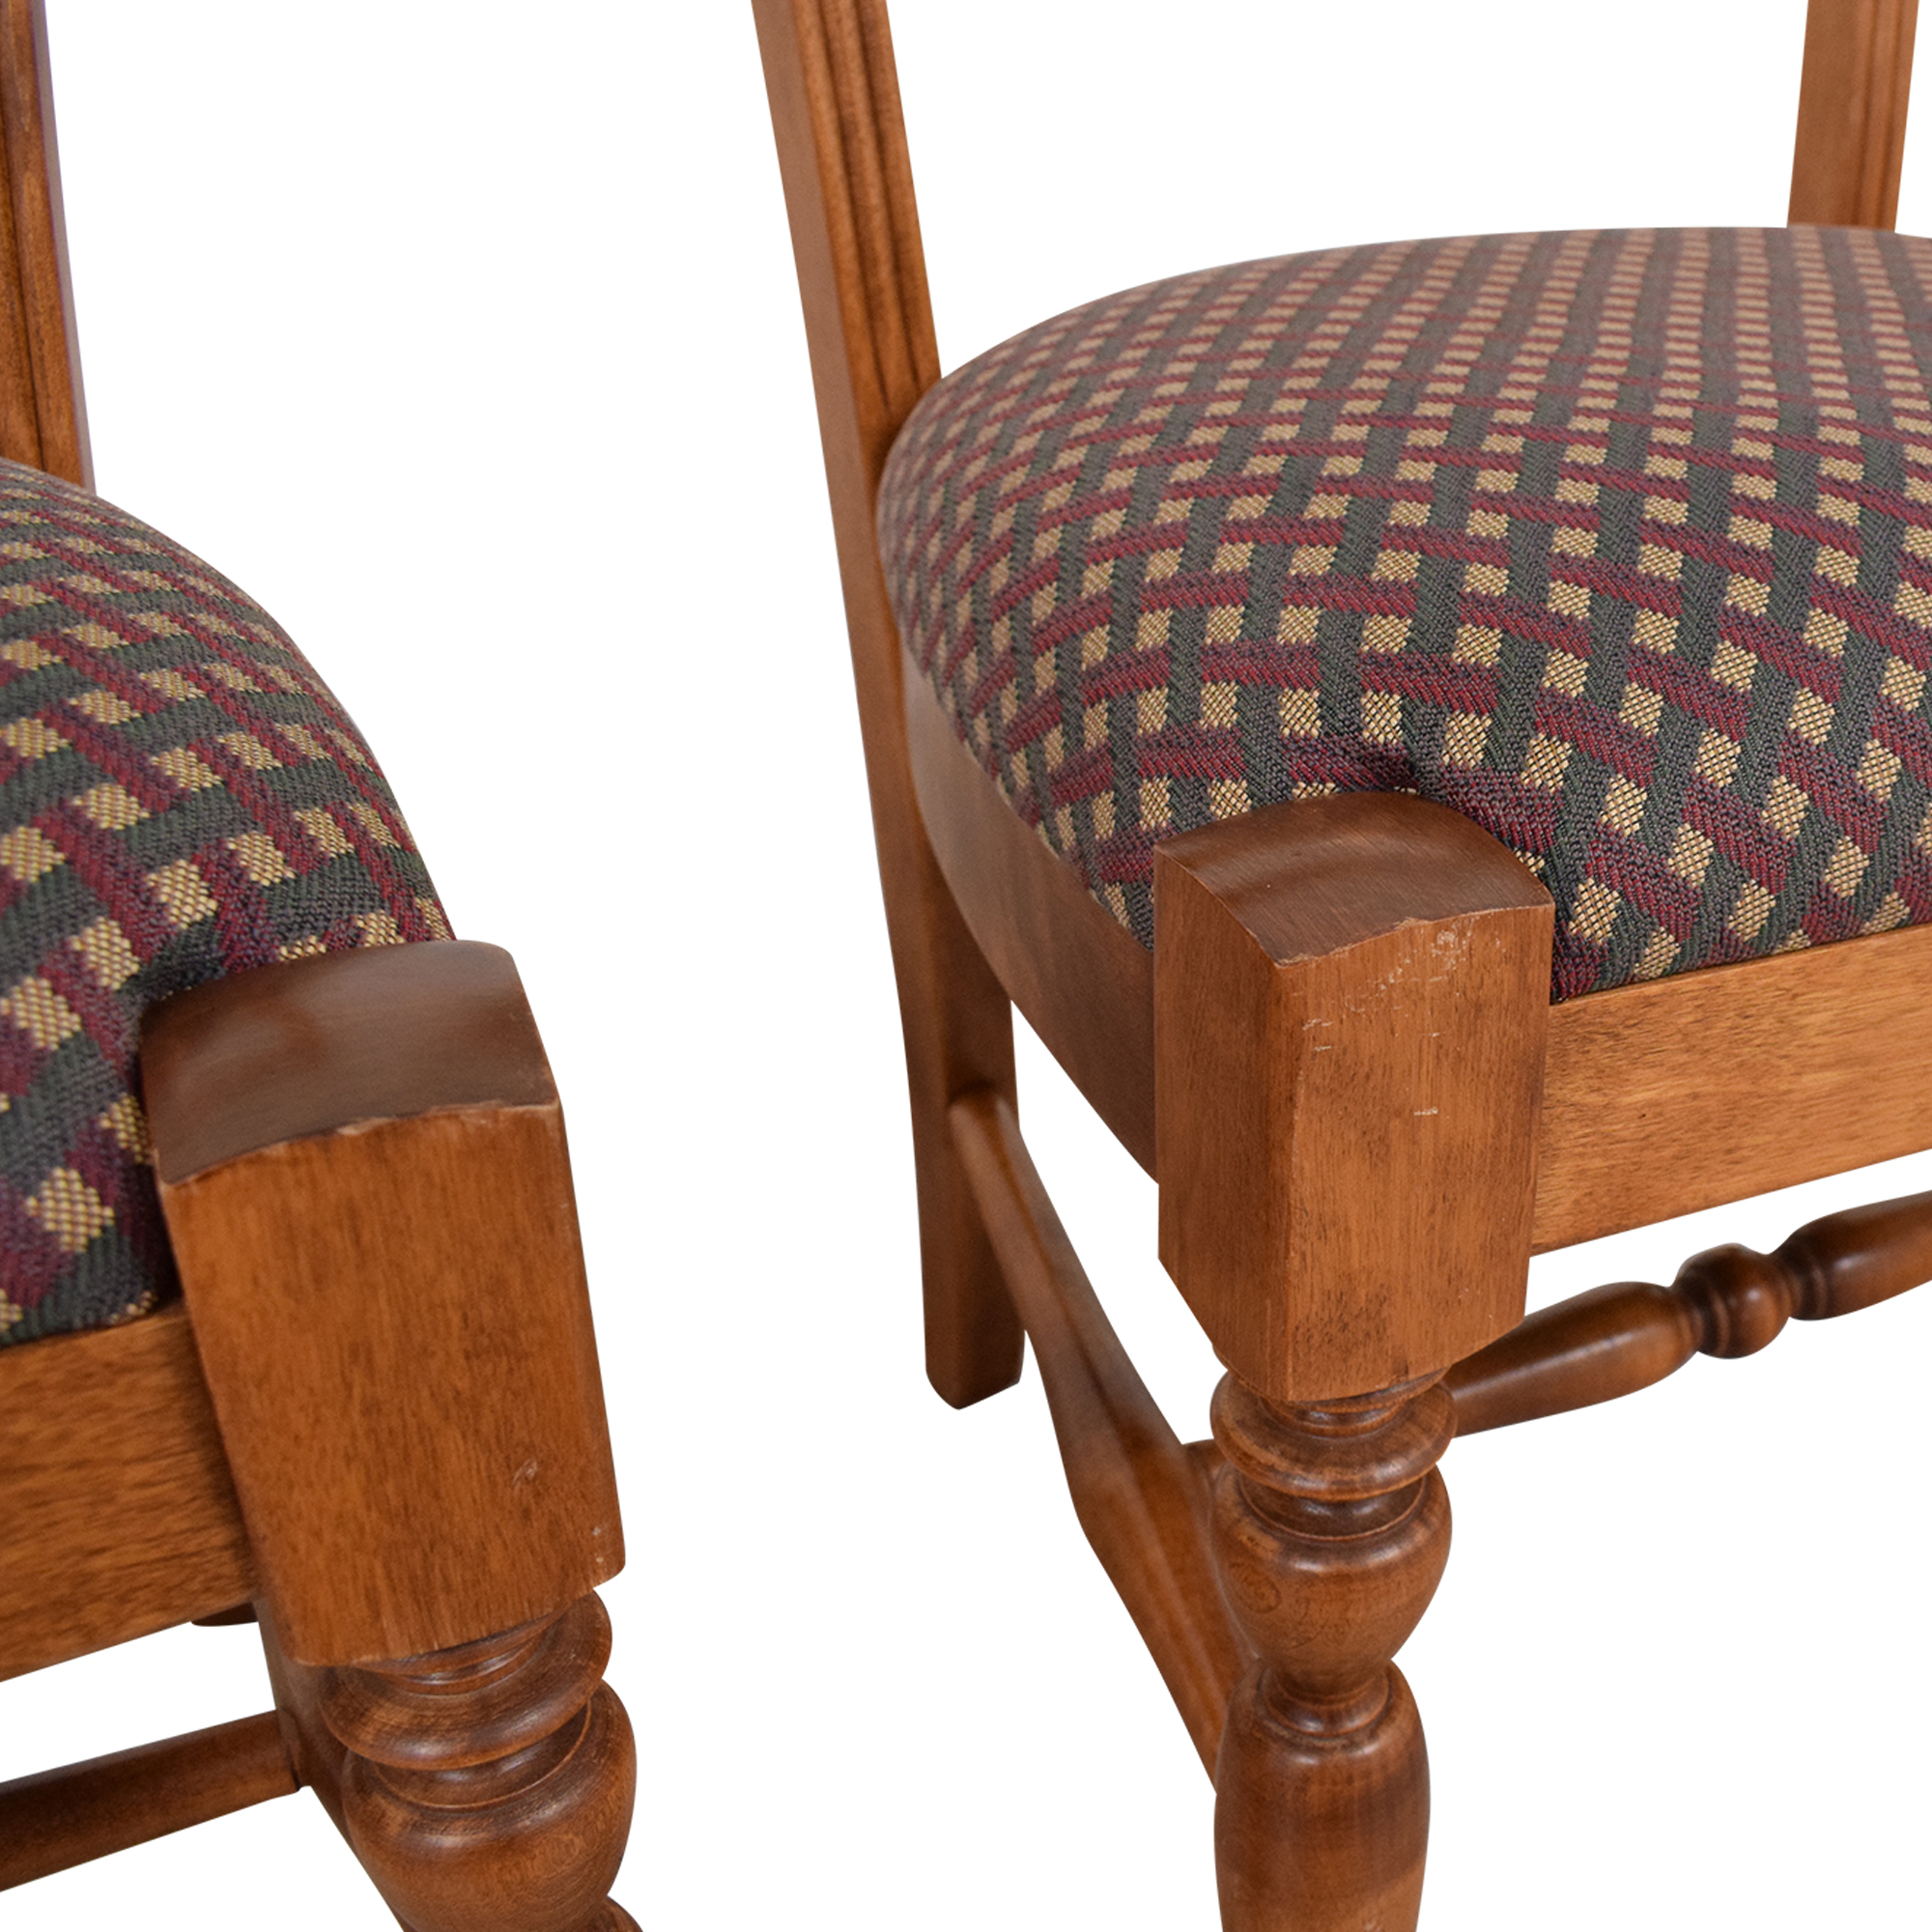 buy Nichols & Stone Nichols & Stone Upholstered Dining Chairs online